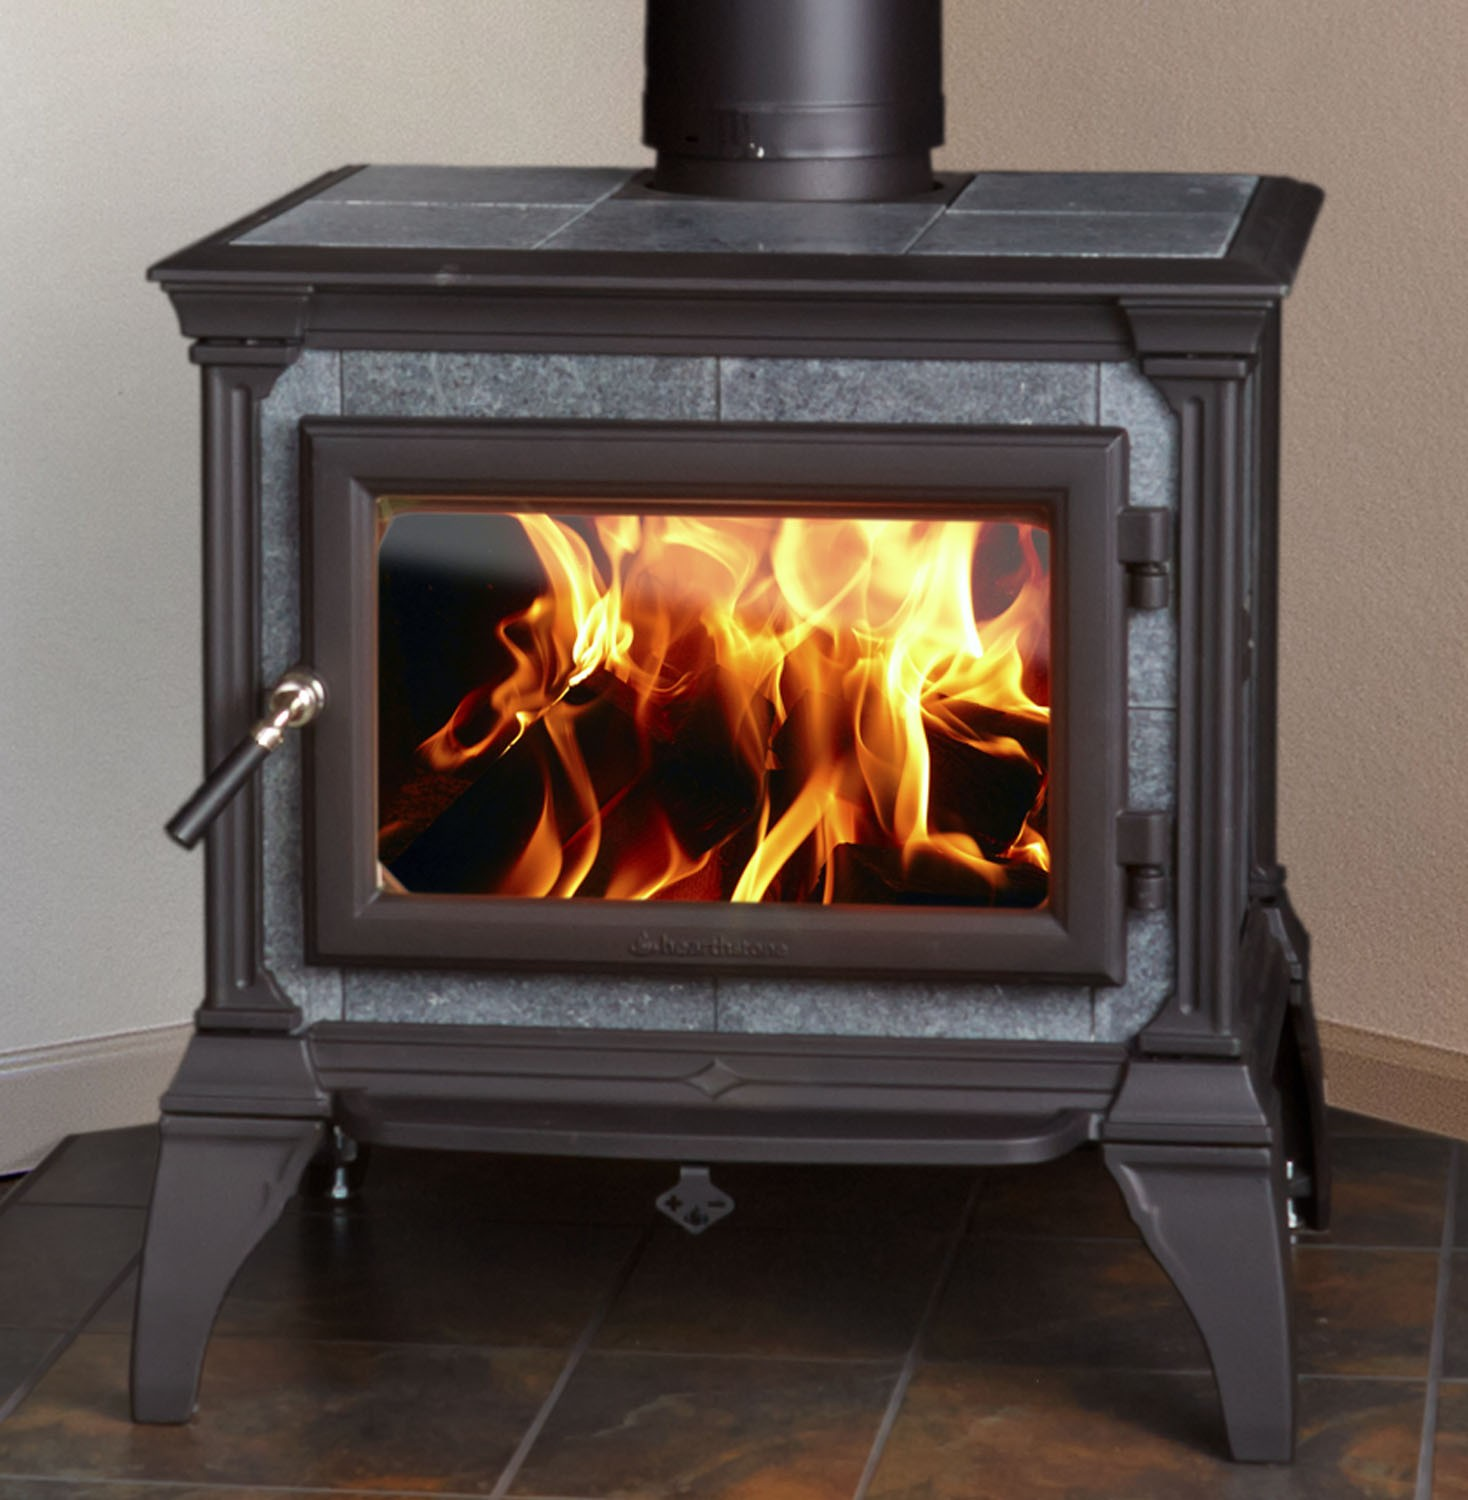 click to see more - Cozy Cabin Stove & Fireplace Shop - Freestanding Wood Stoves